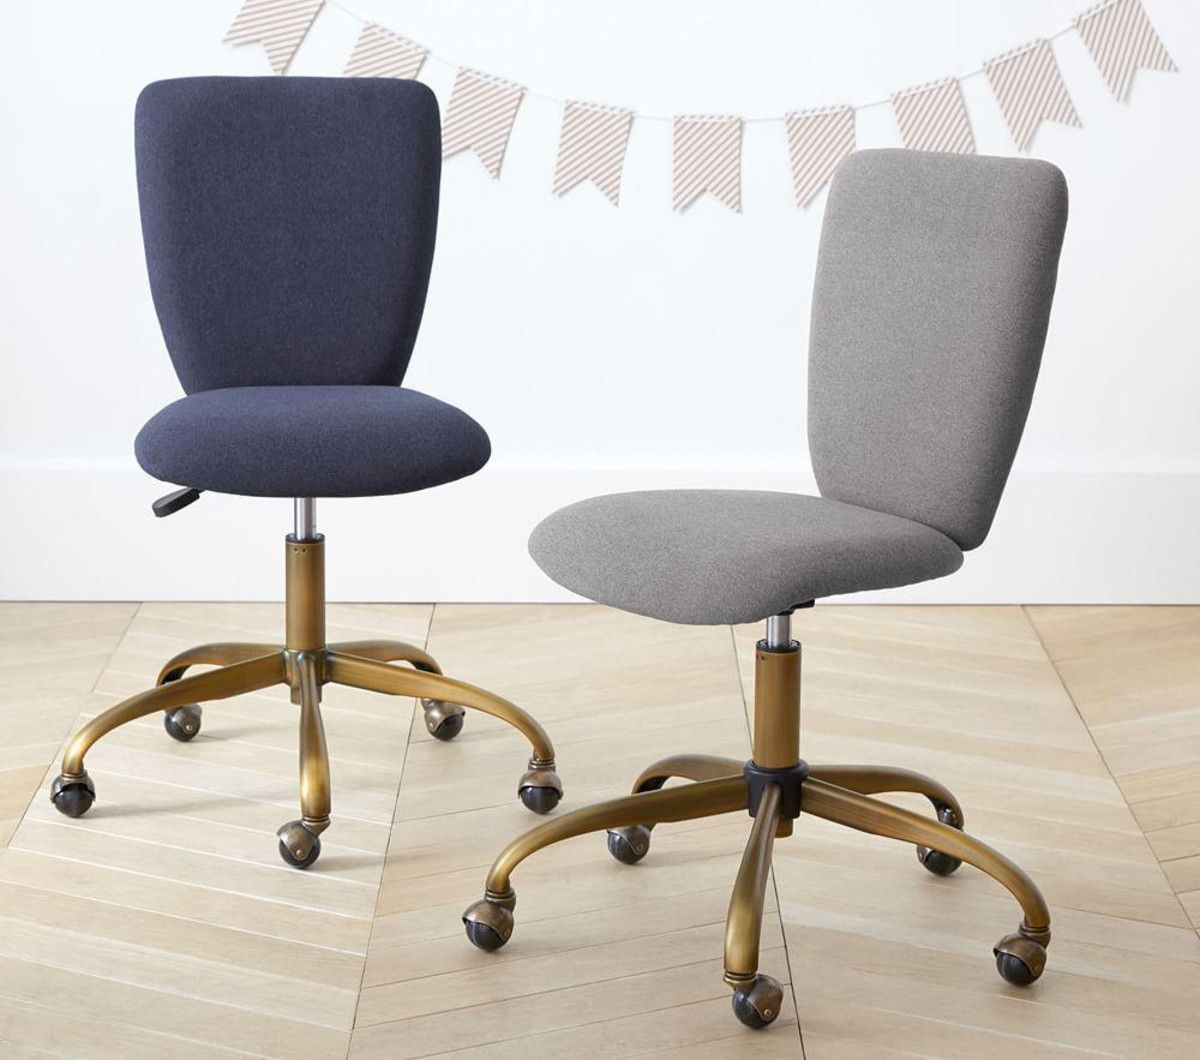 Desks Chairs Upholstered Desk Chair Furniture Chair